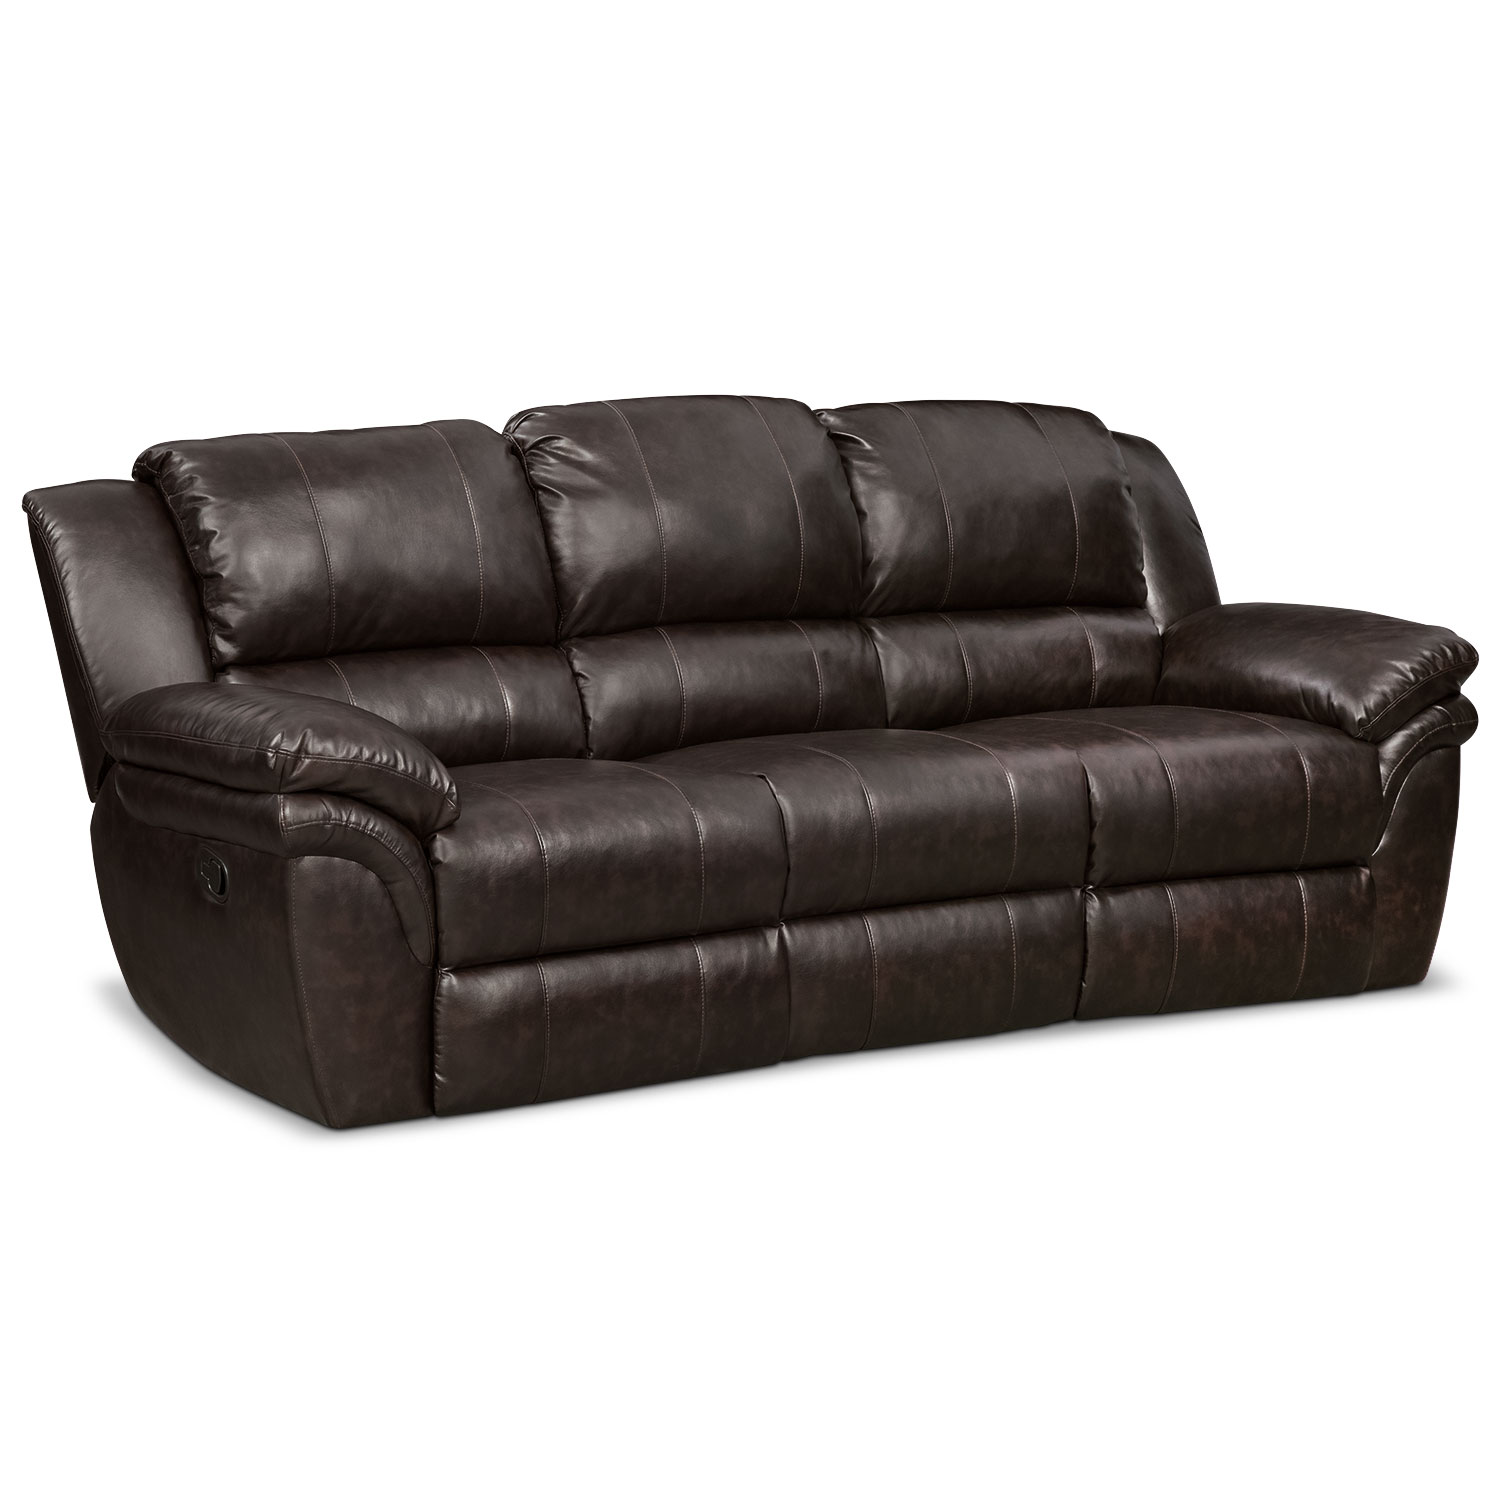 Aldo Manual Dual Reclining Sofa Loveseat and Recliner Set Brown